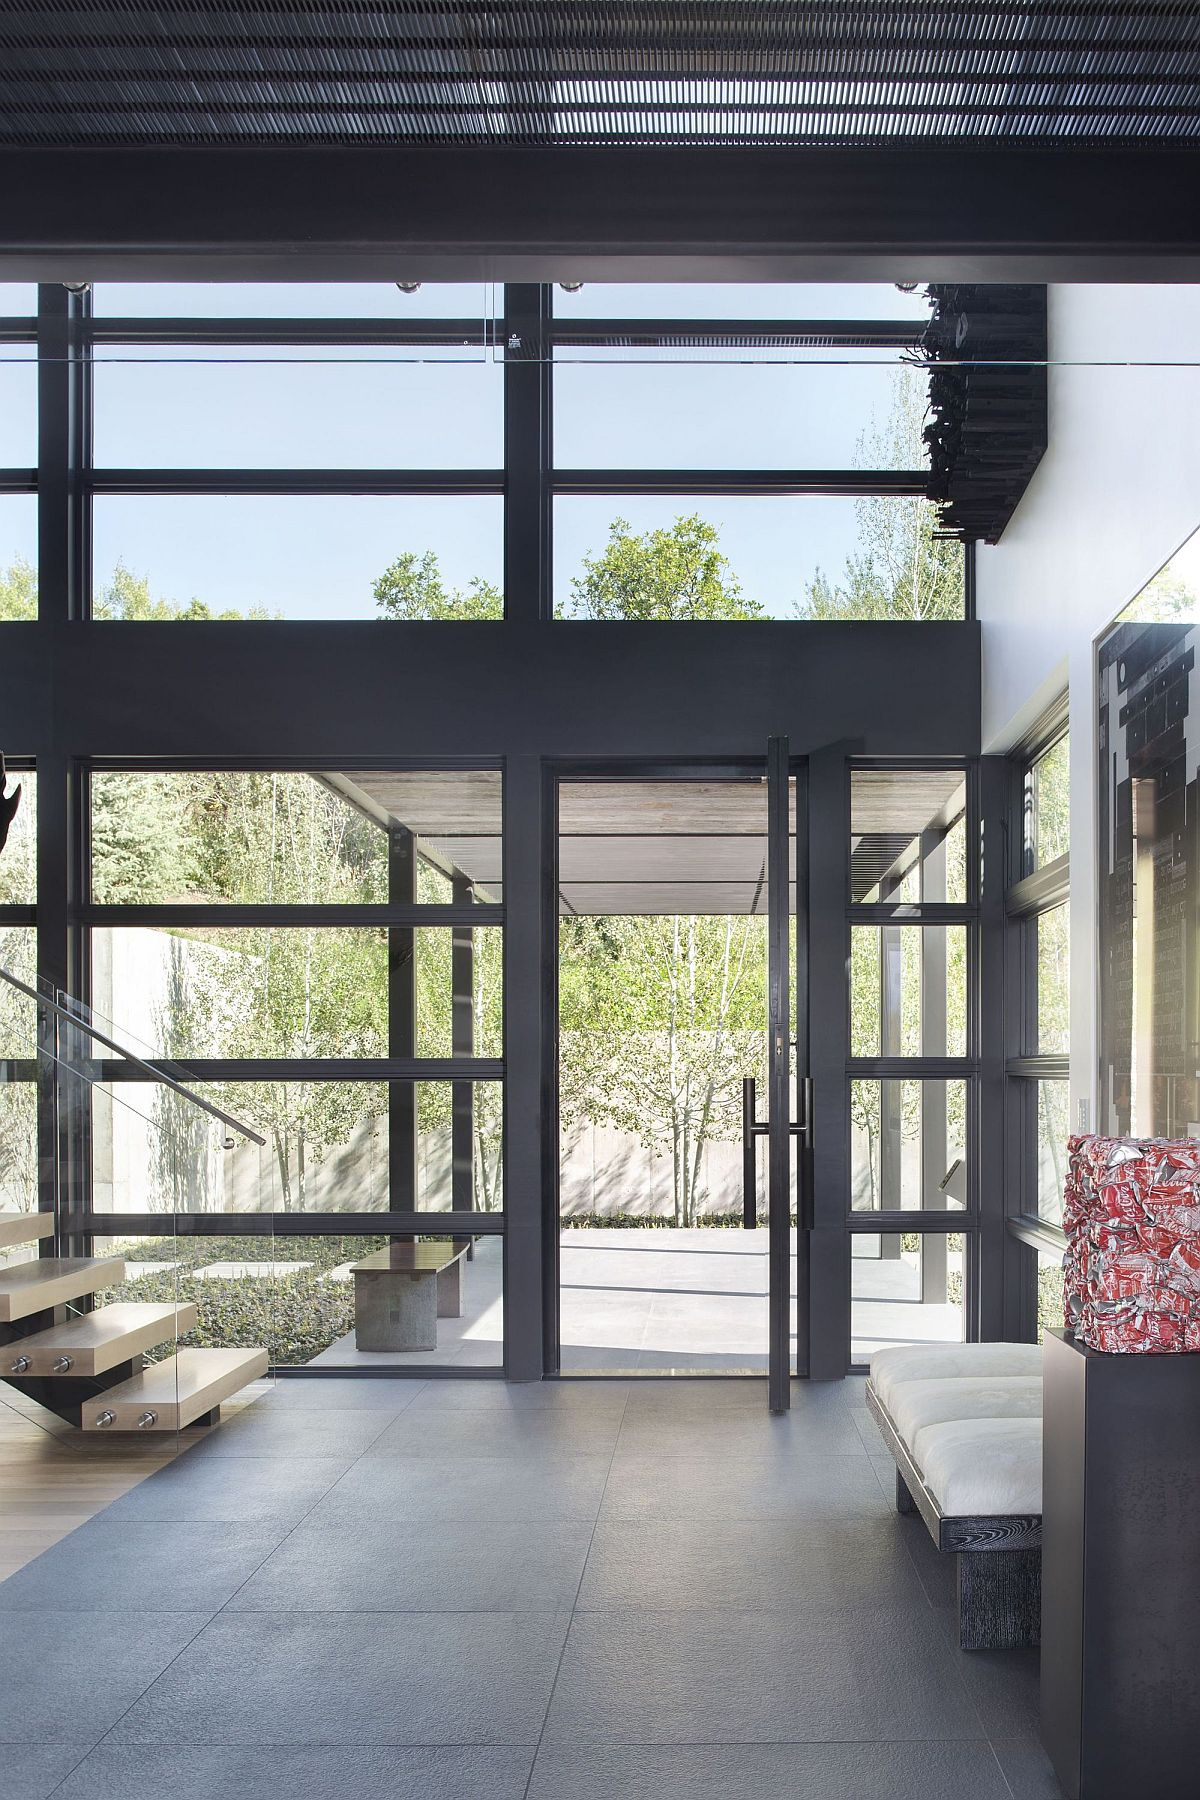 Uncomplicated-frame-of-the-houe-coupled-with-glass-and-concrete-makes-it-a-modern-delight-73843